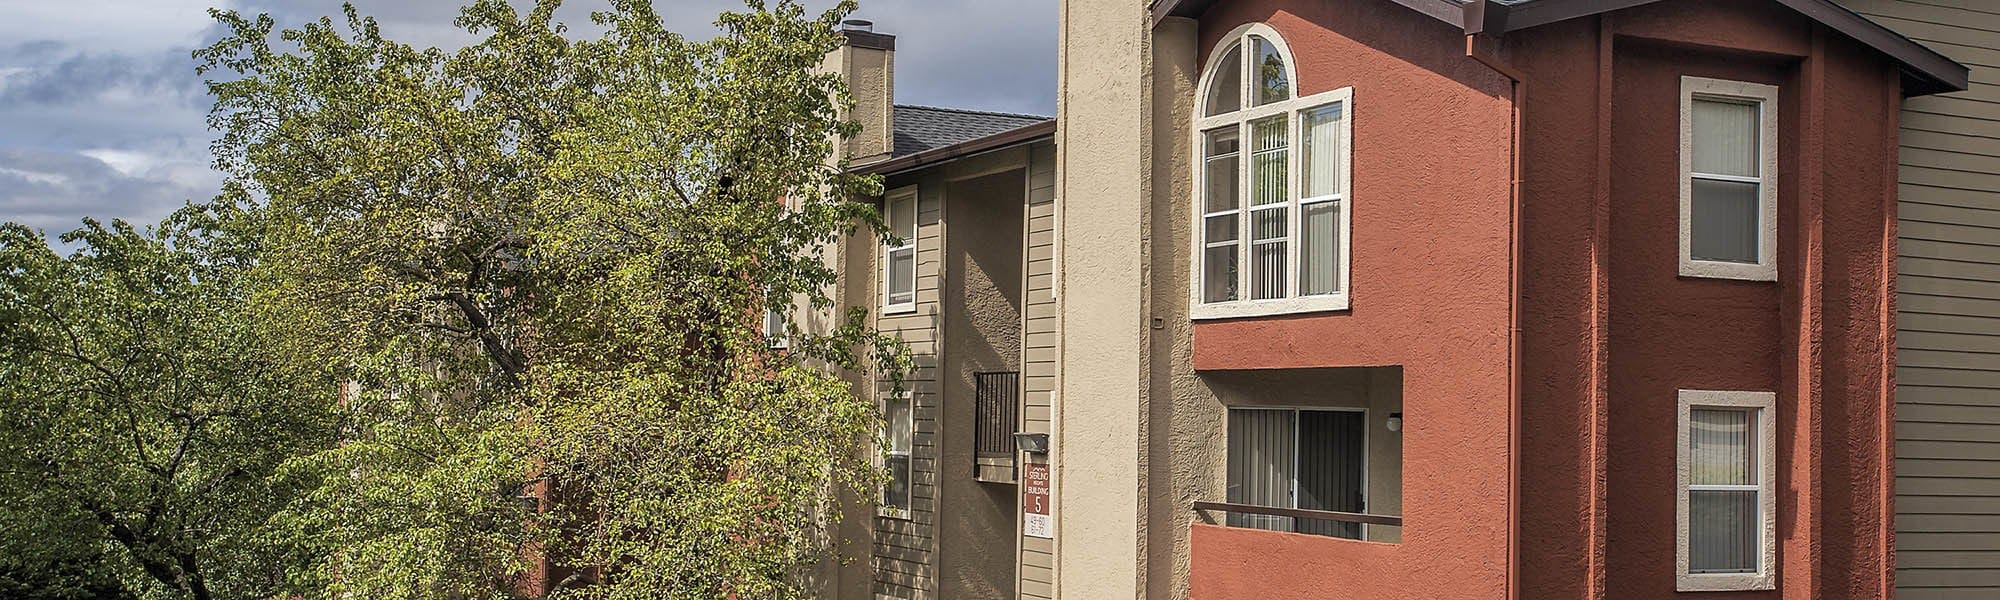 Learn about our neighborhood at Sterling Heights Apartment Homes in Benicia, CA on our website